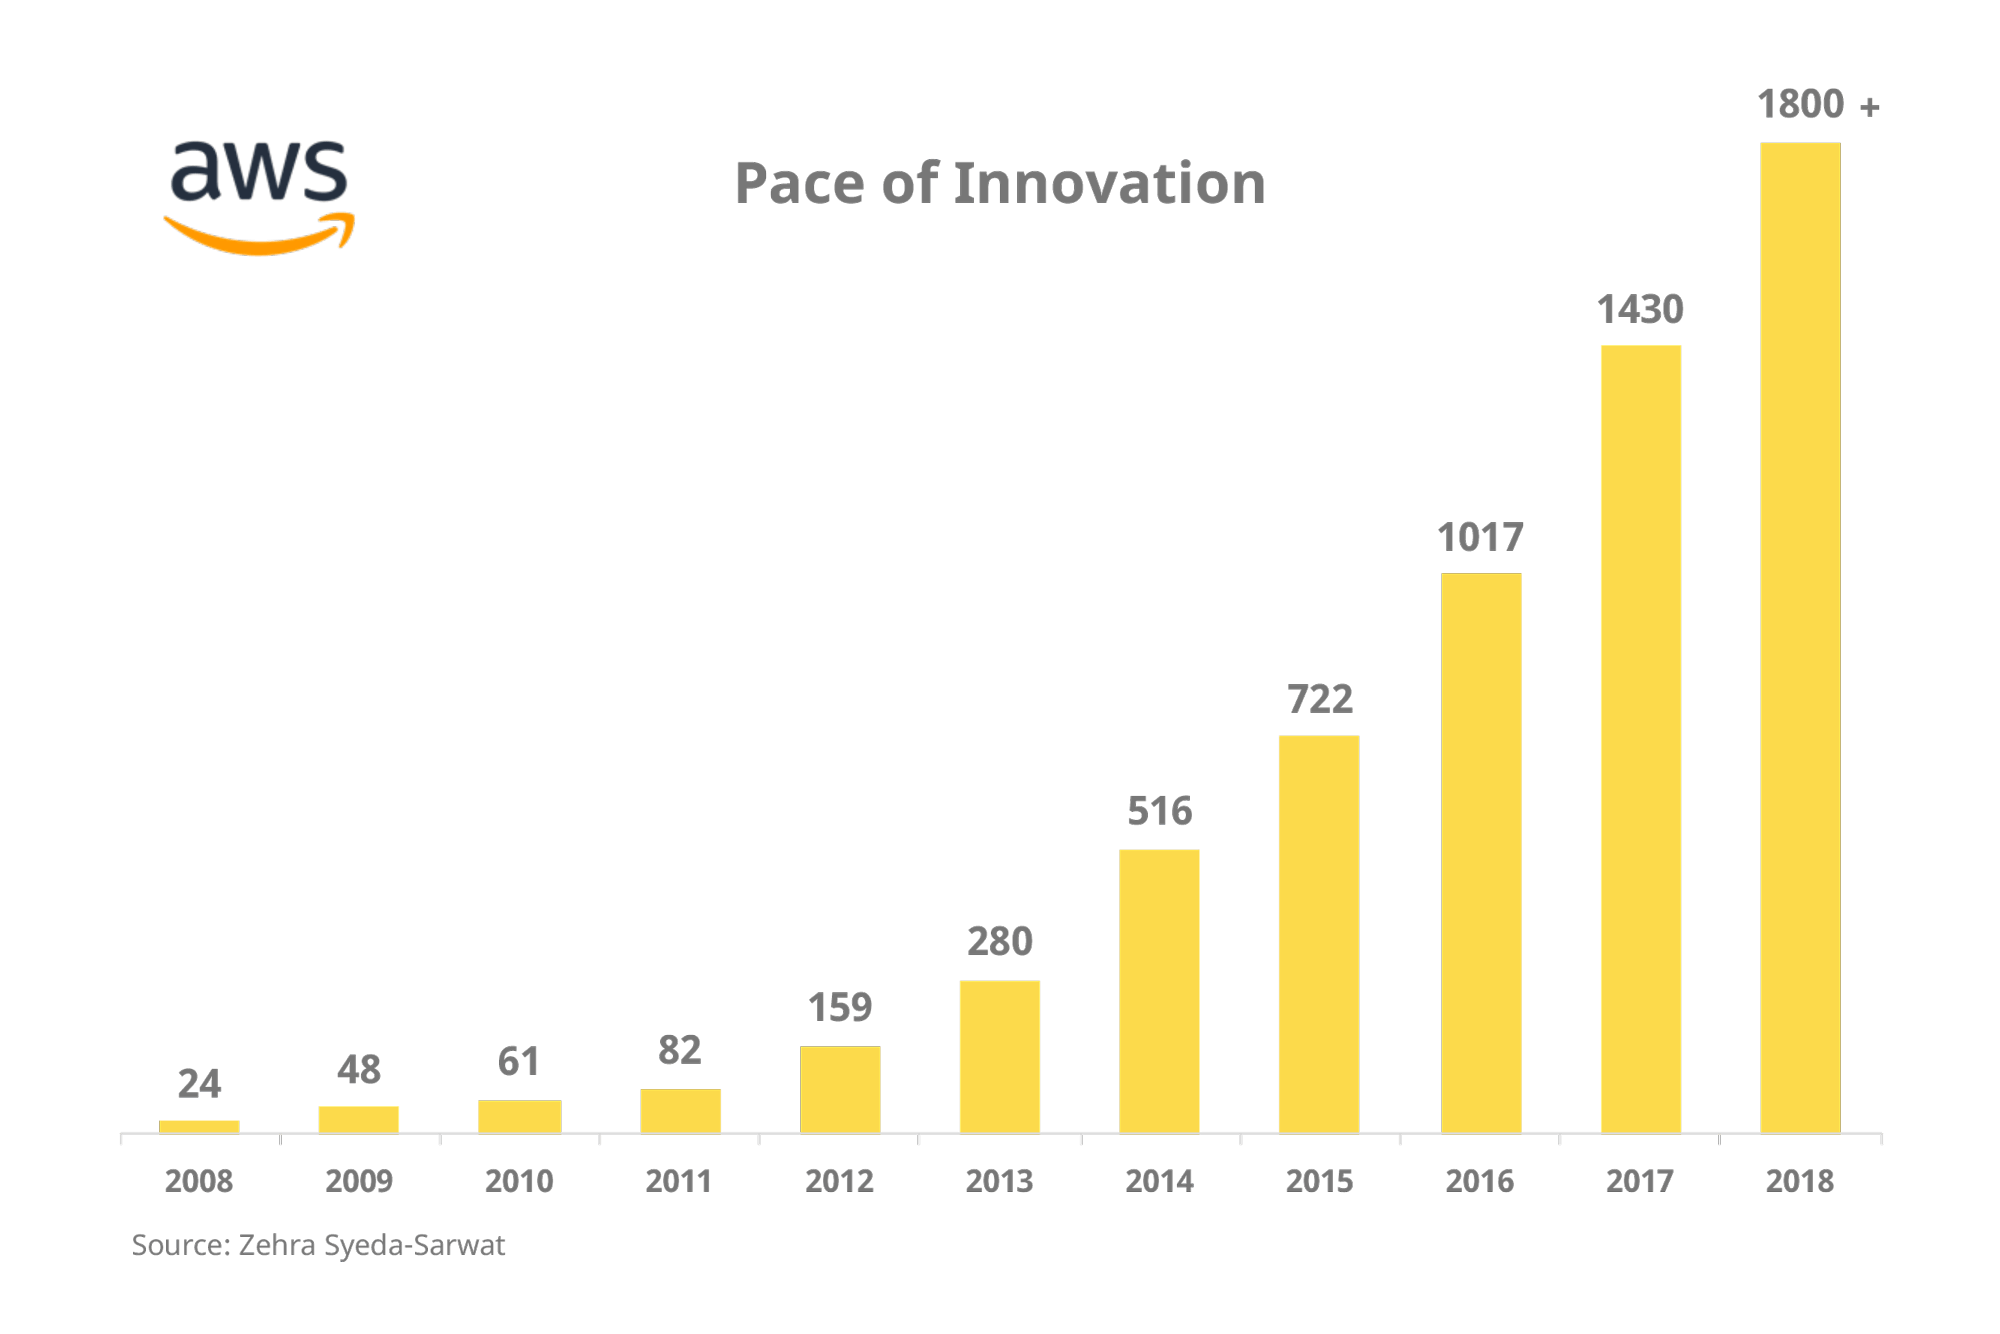 AWS has a rapid pace of innovation